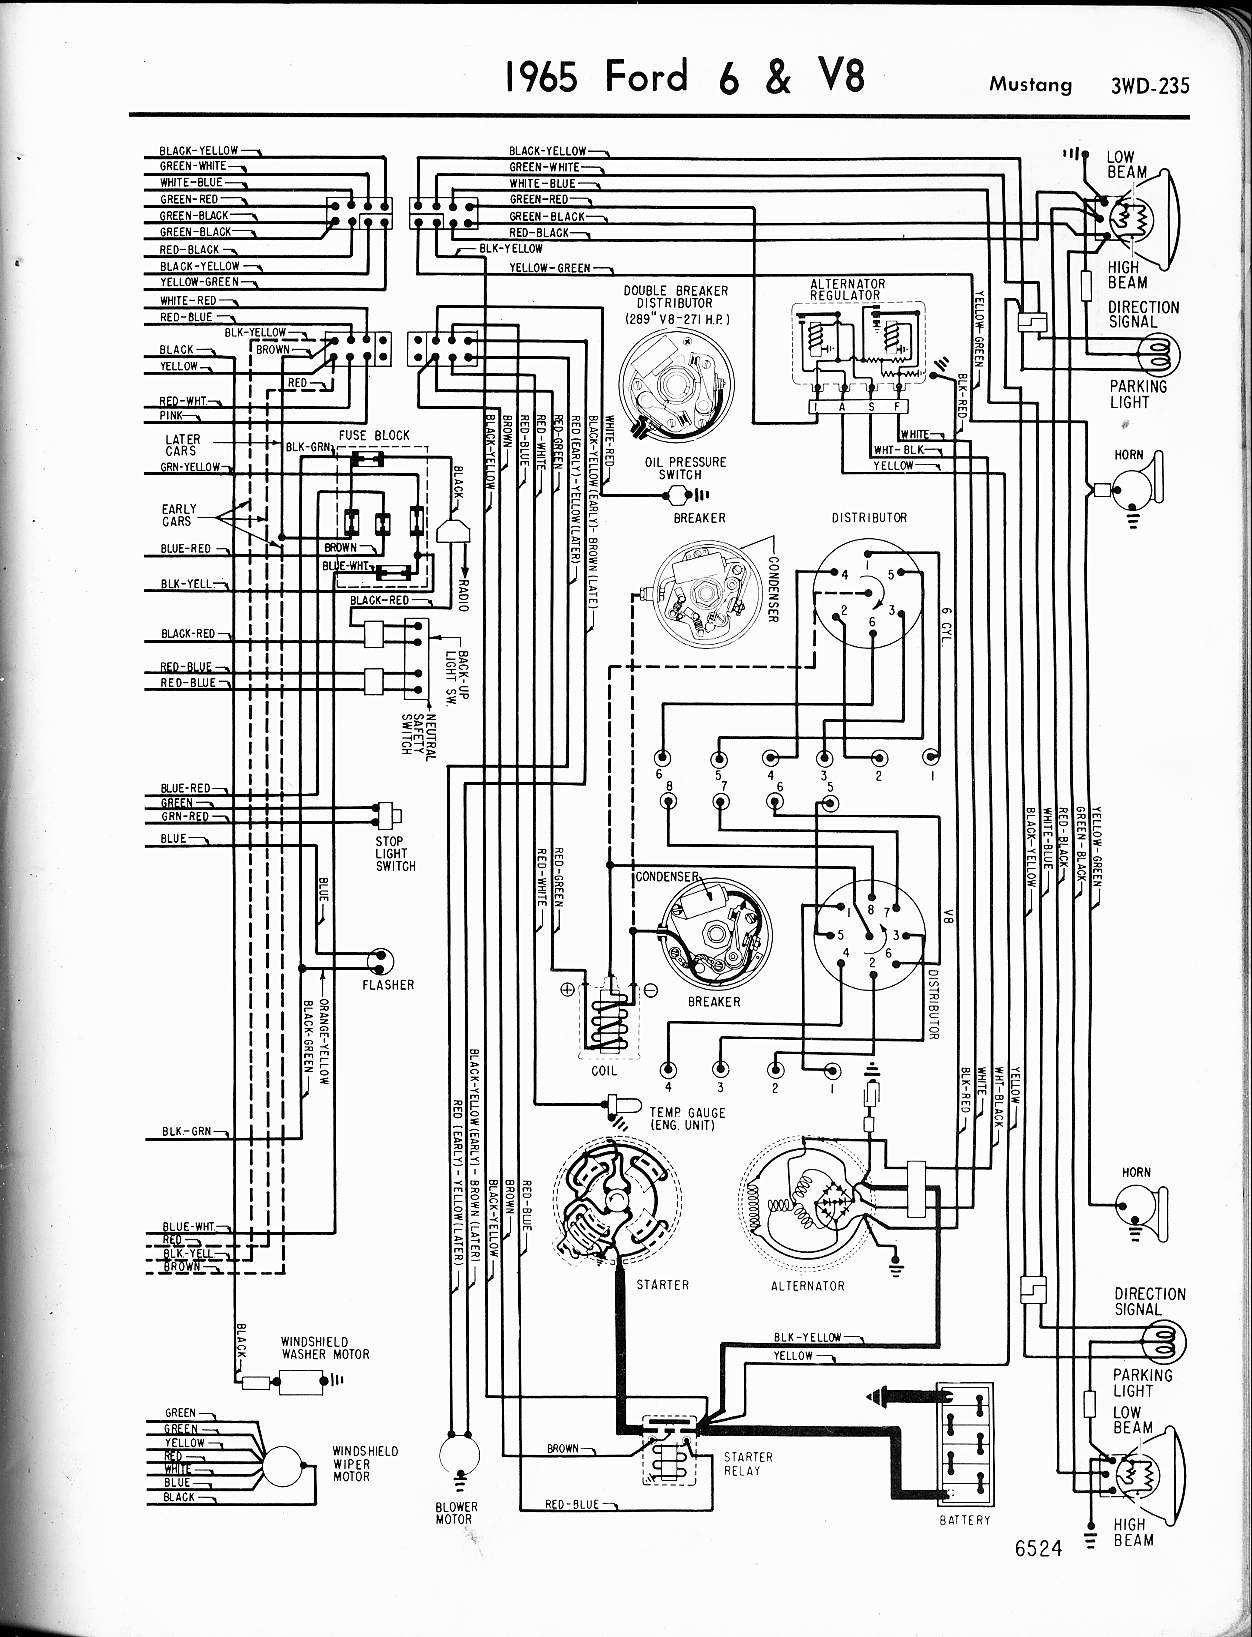 [SCHEMATICS_4JK]  1969 Lincoln Wiring Diagram Schematic 92 Ford F 250 Wire Diagrams -  sule.kucing-garong-12.sardaracomunitaospitale.it | 1966 Ford F100 Engine Wiring Diagram Free Picture |  | Wiring Diagram and Schematics